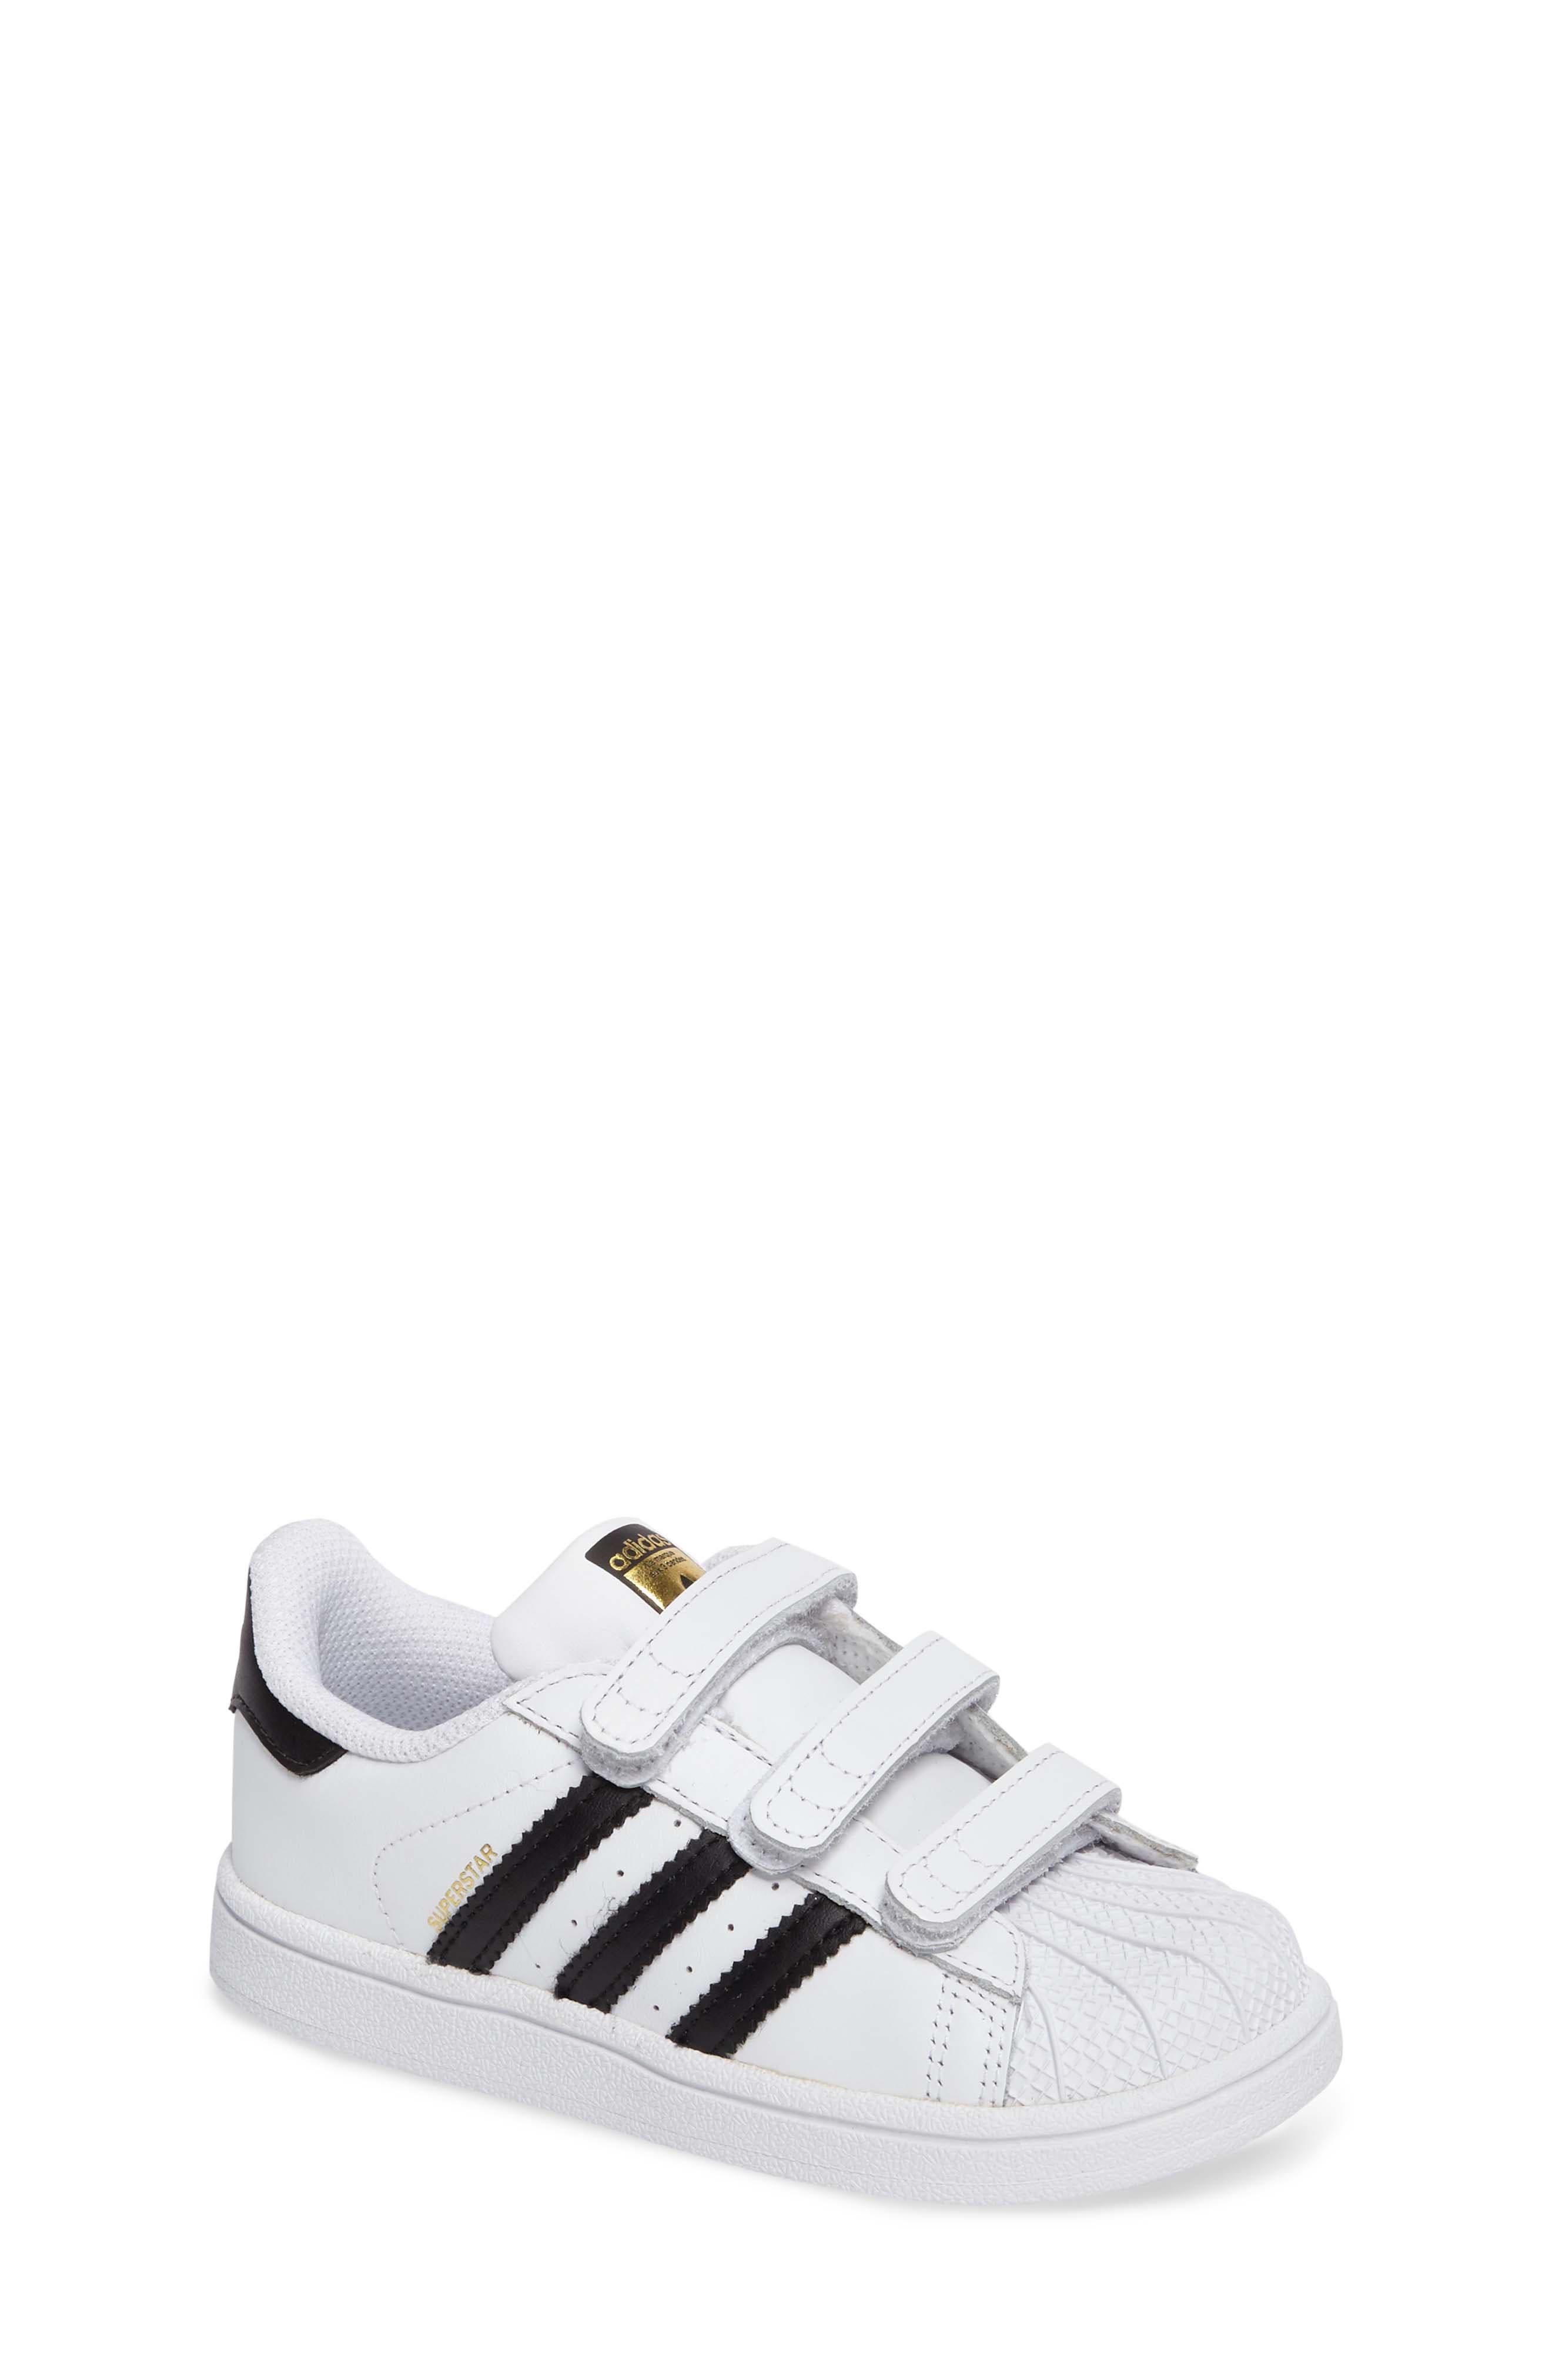 Infant Adidas Superstar Sneaker Size 4 M  White